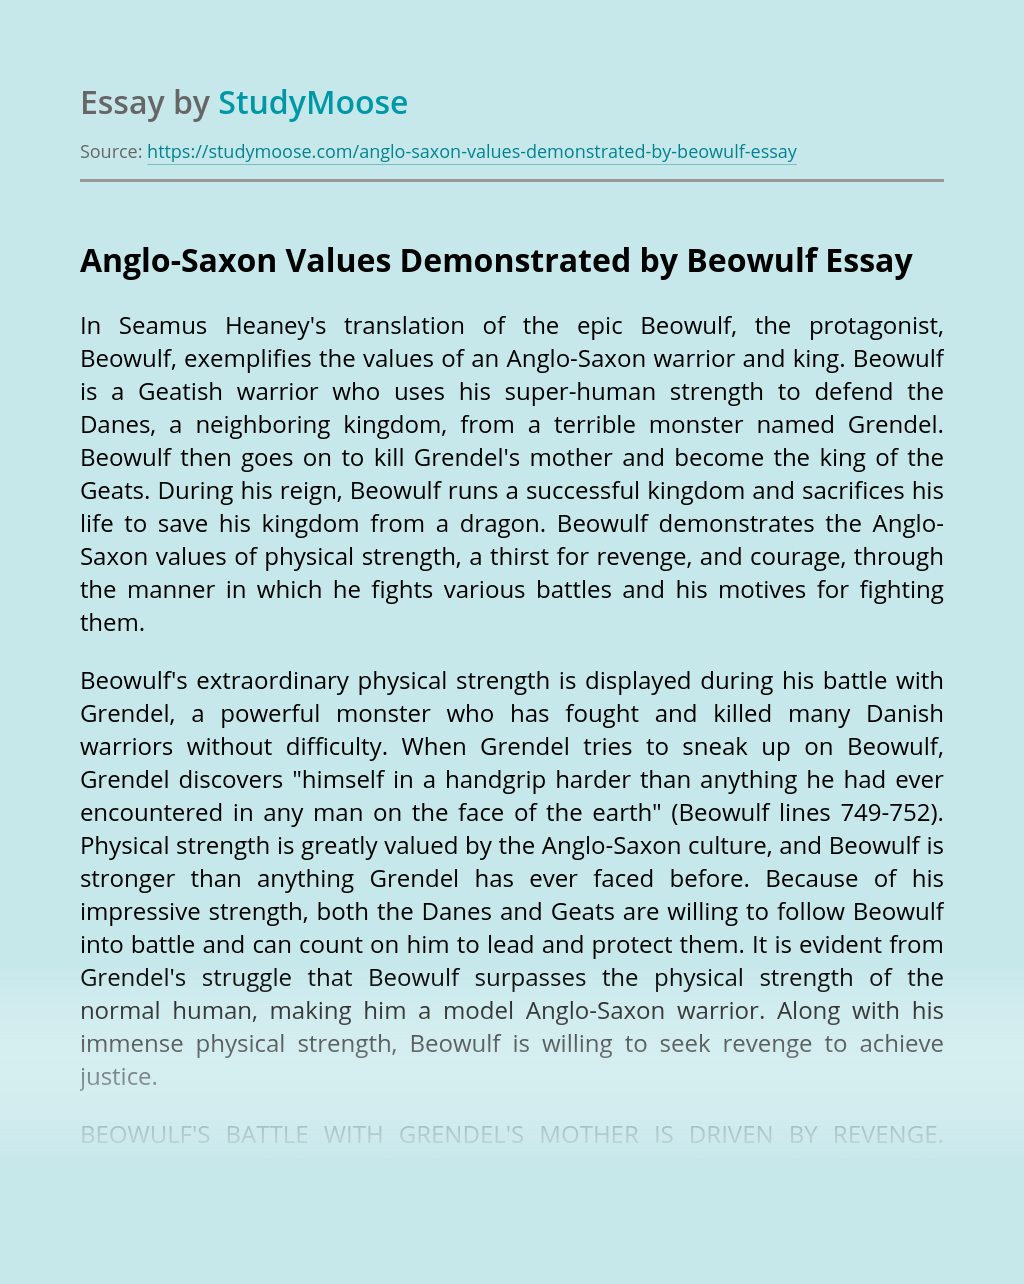 Anglo-Saxon Values Demonstrated by Beowulf